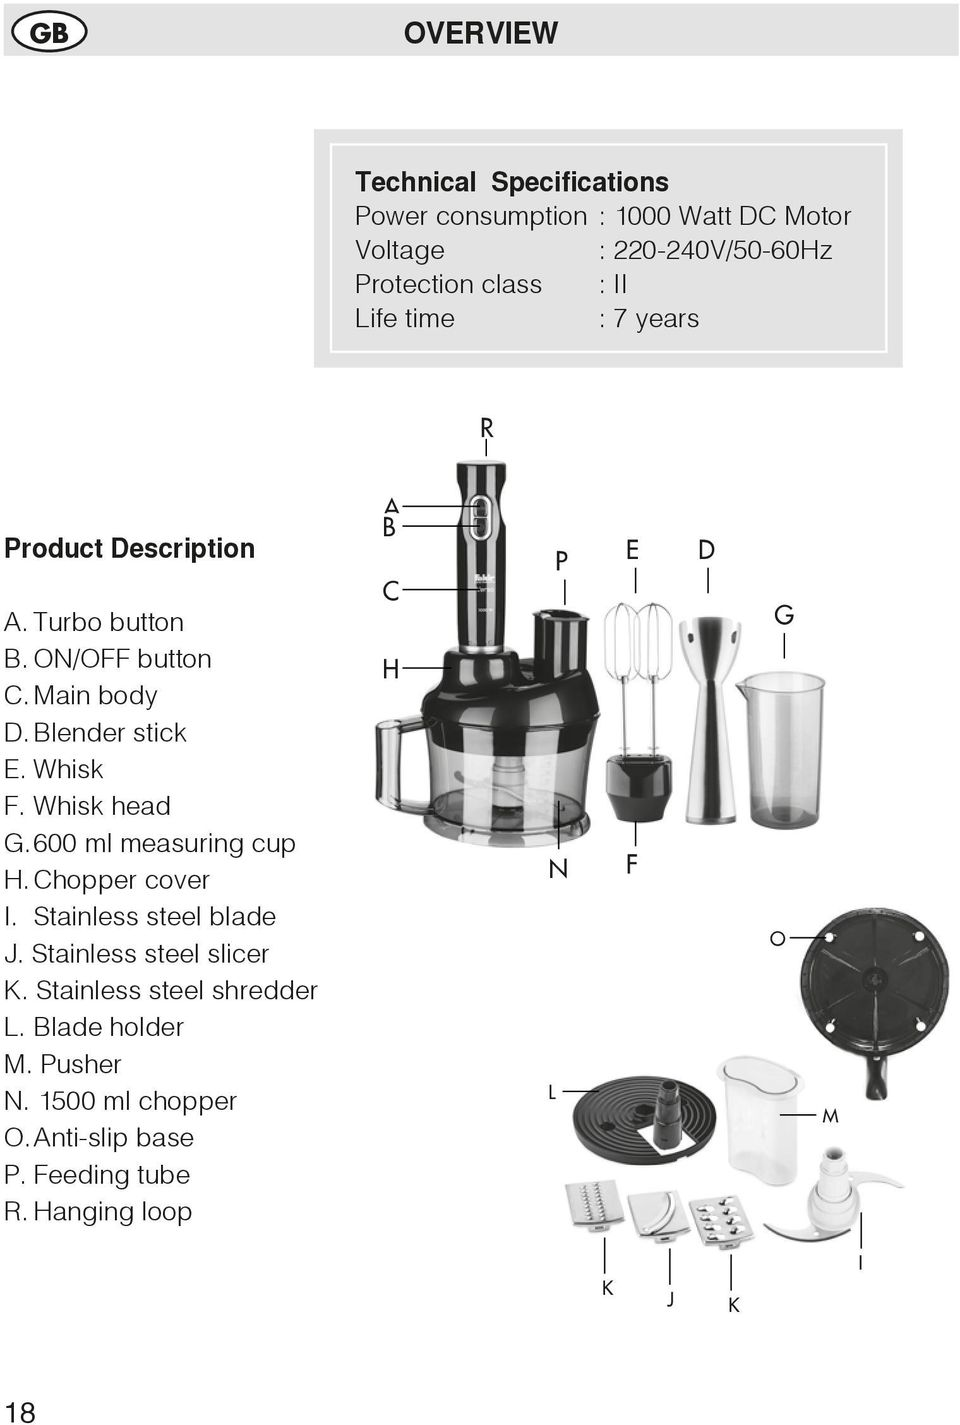 Whisk head G. 600 ml measuring cup H. Chopper cover I. Stainless steel blade J. Stainless steel slicer K.